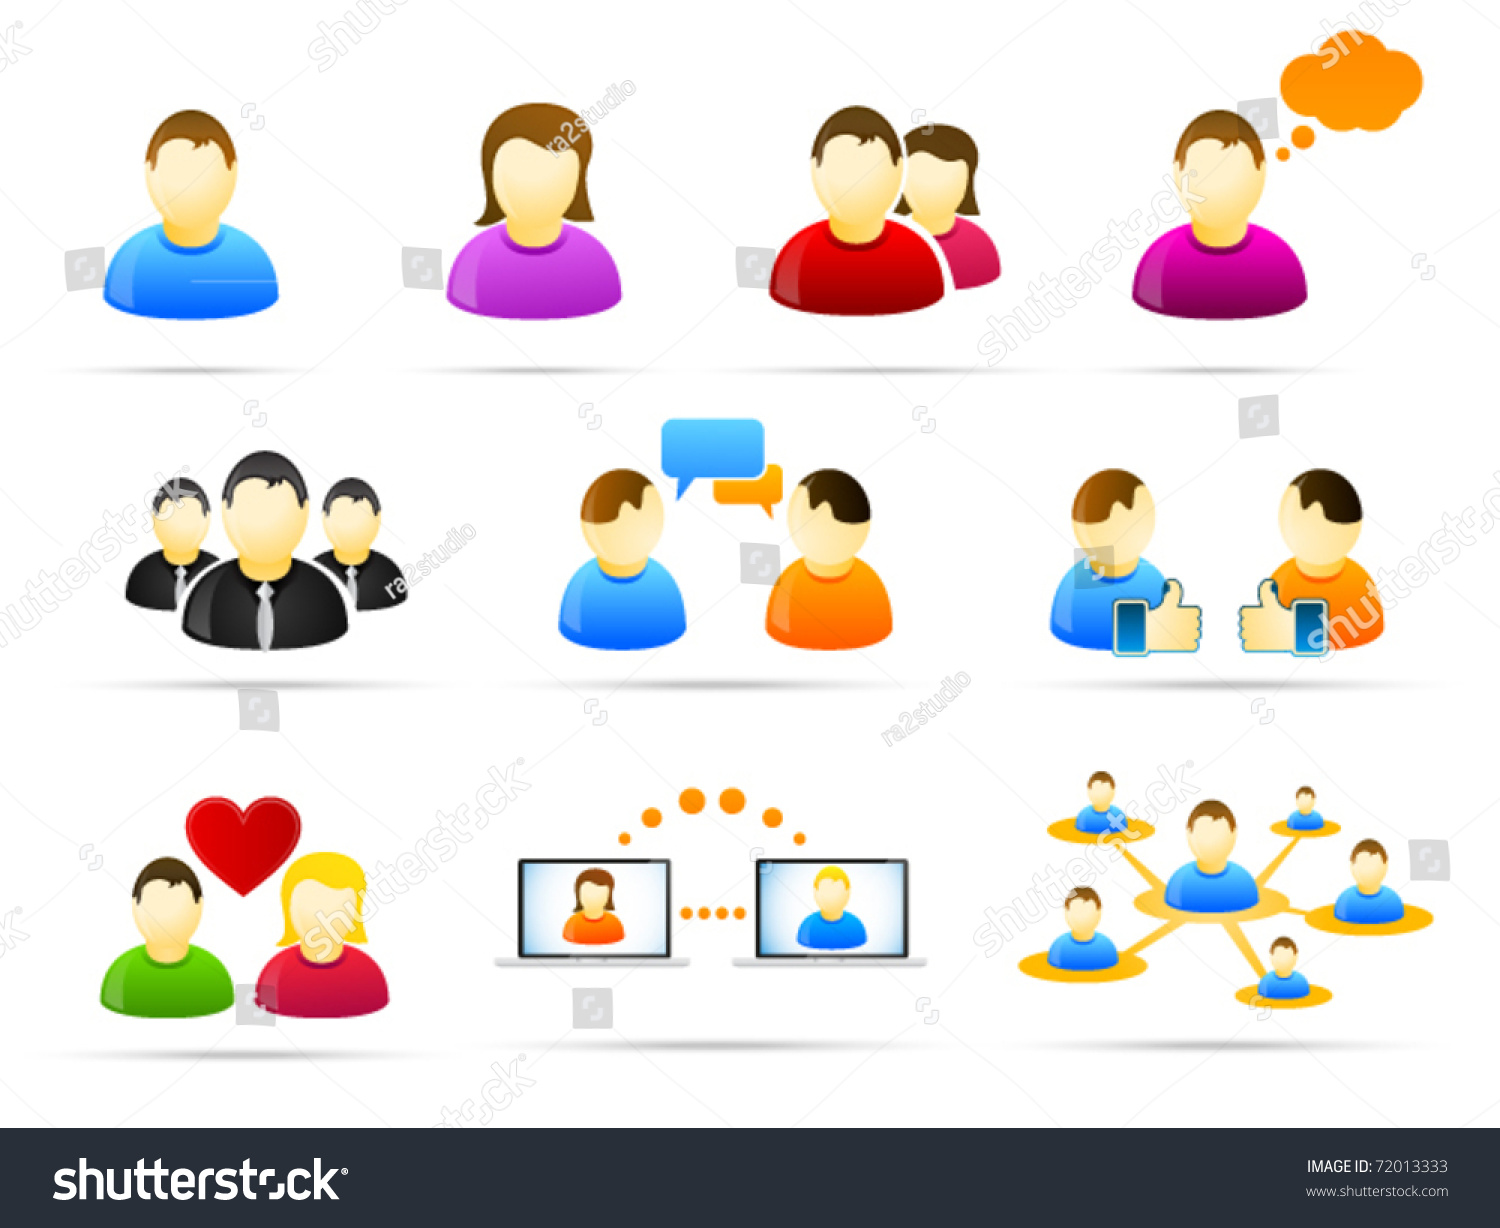 Colorful Social Media People Icon Set Stock Vector ...